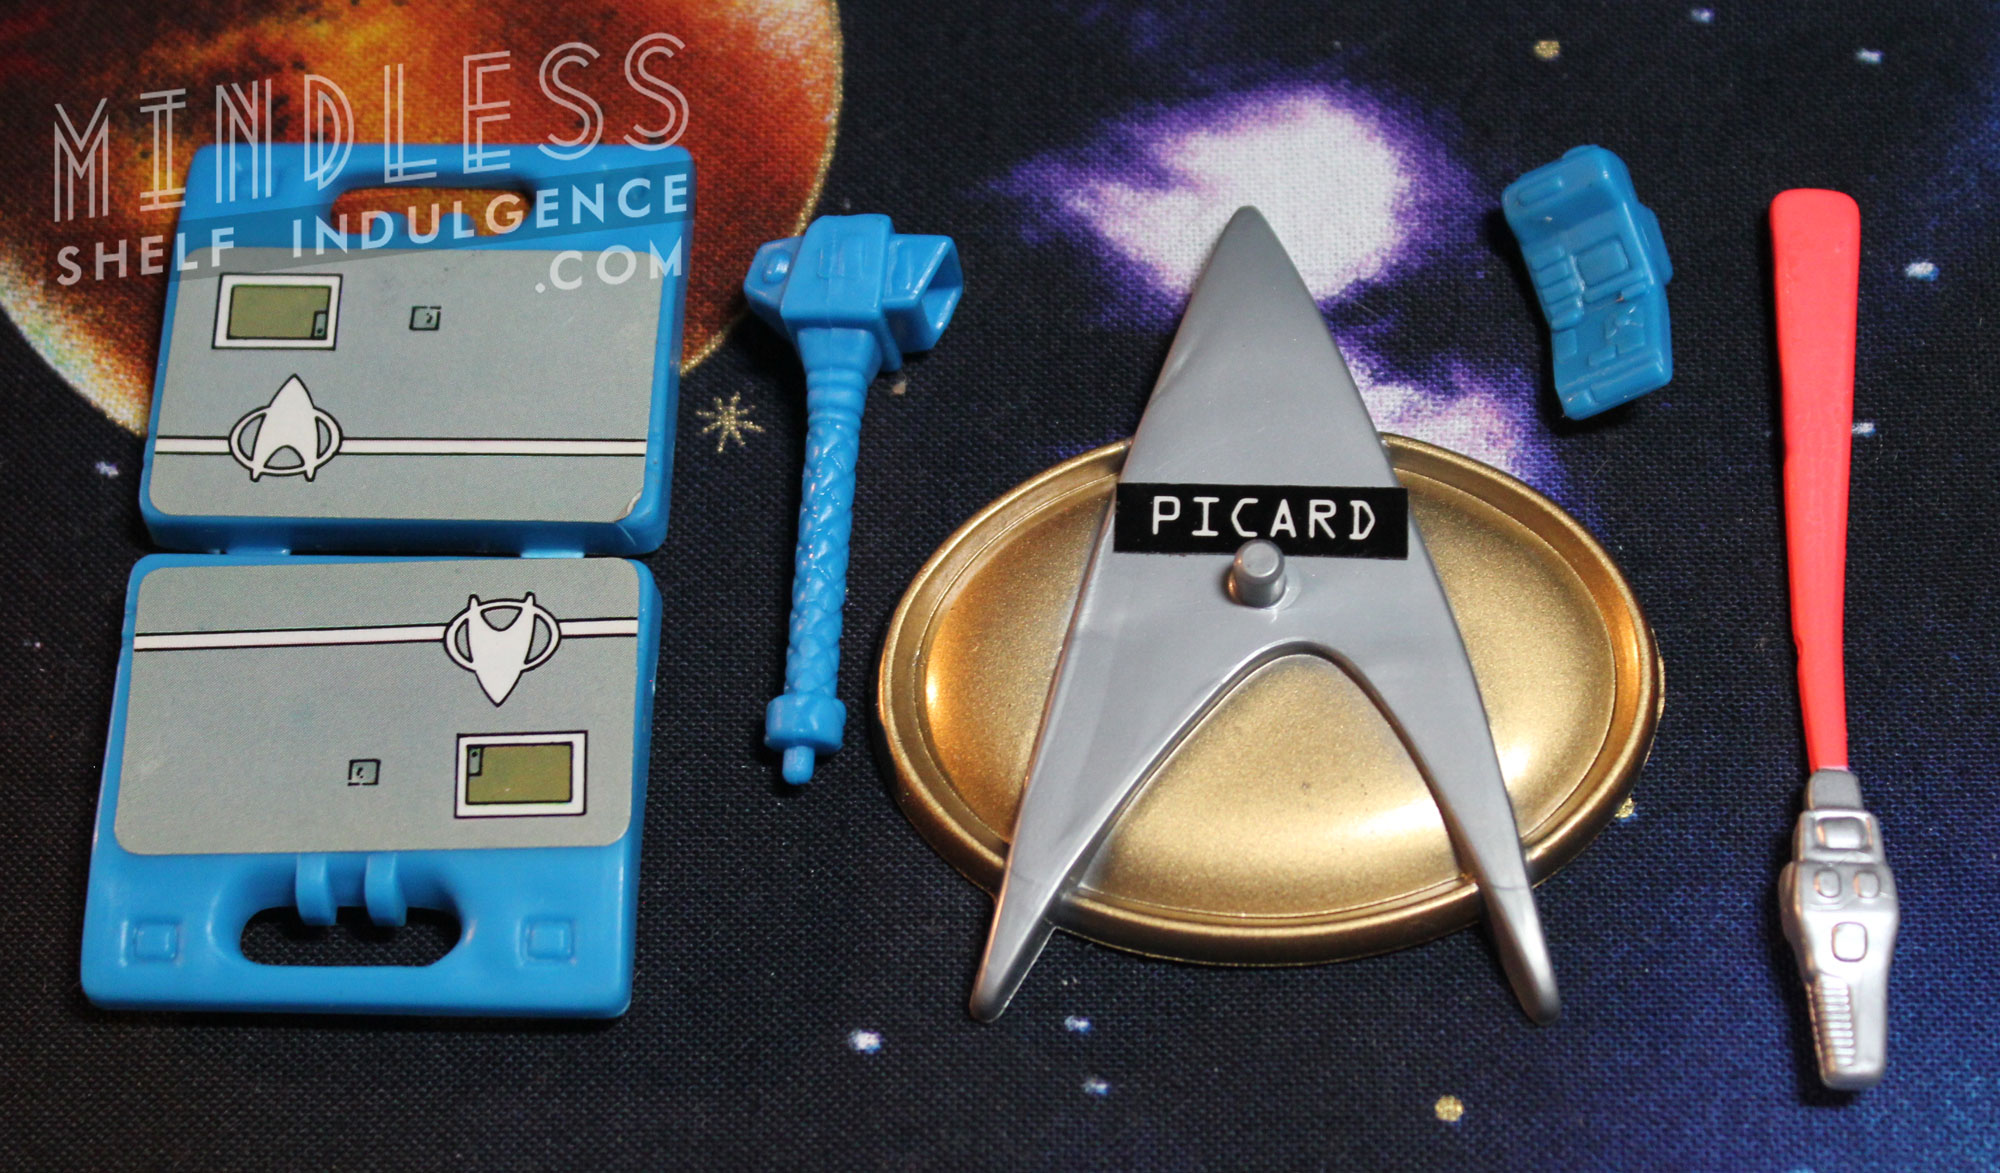 Picard in DS9 Uniform's accessories